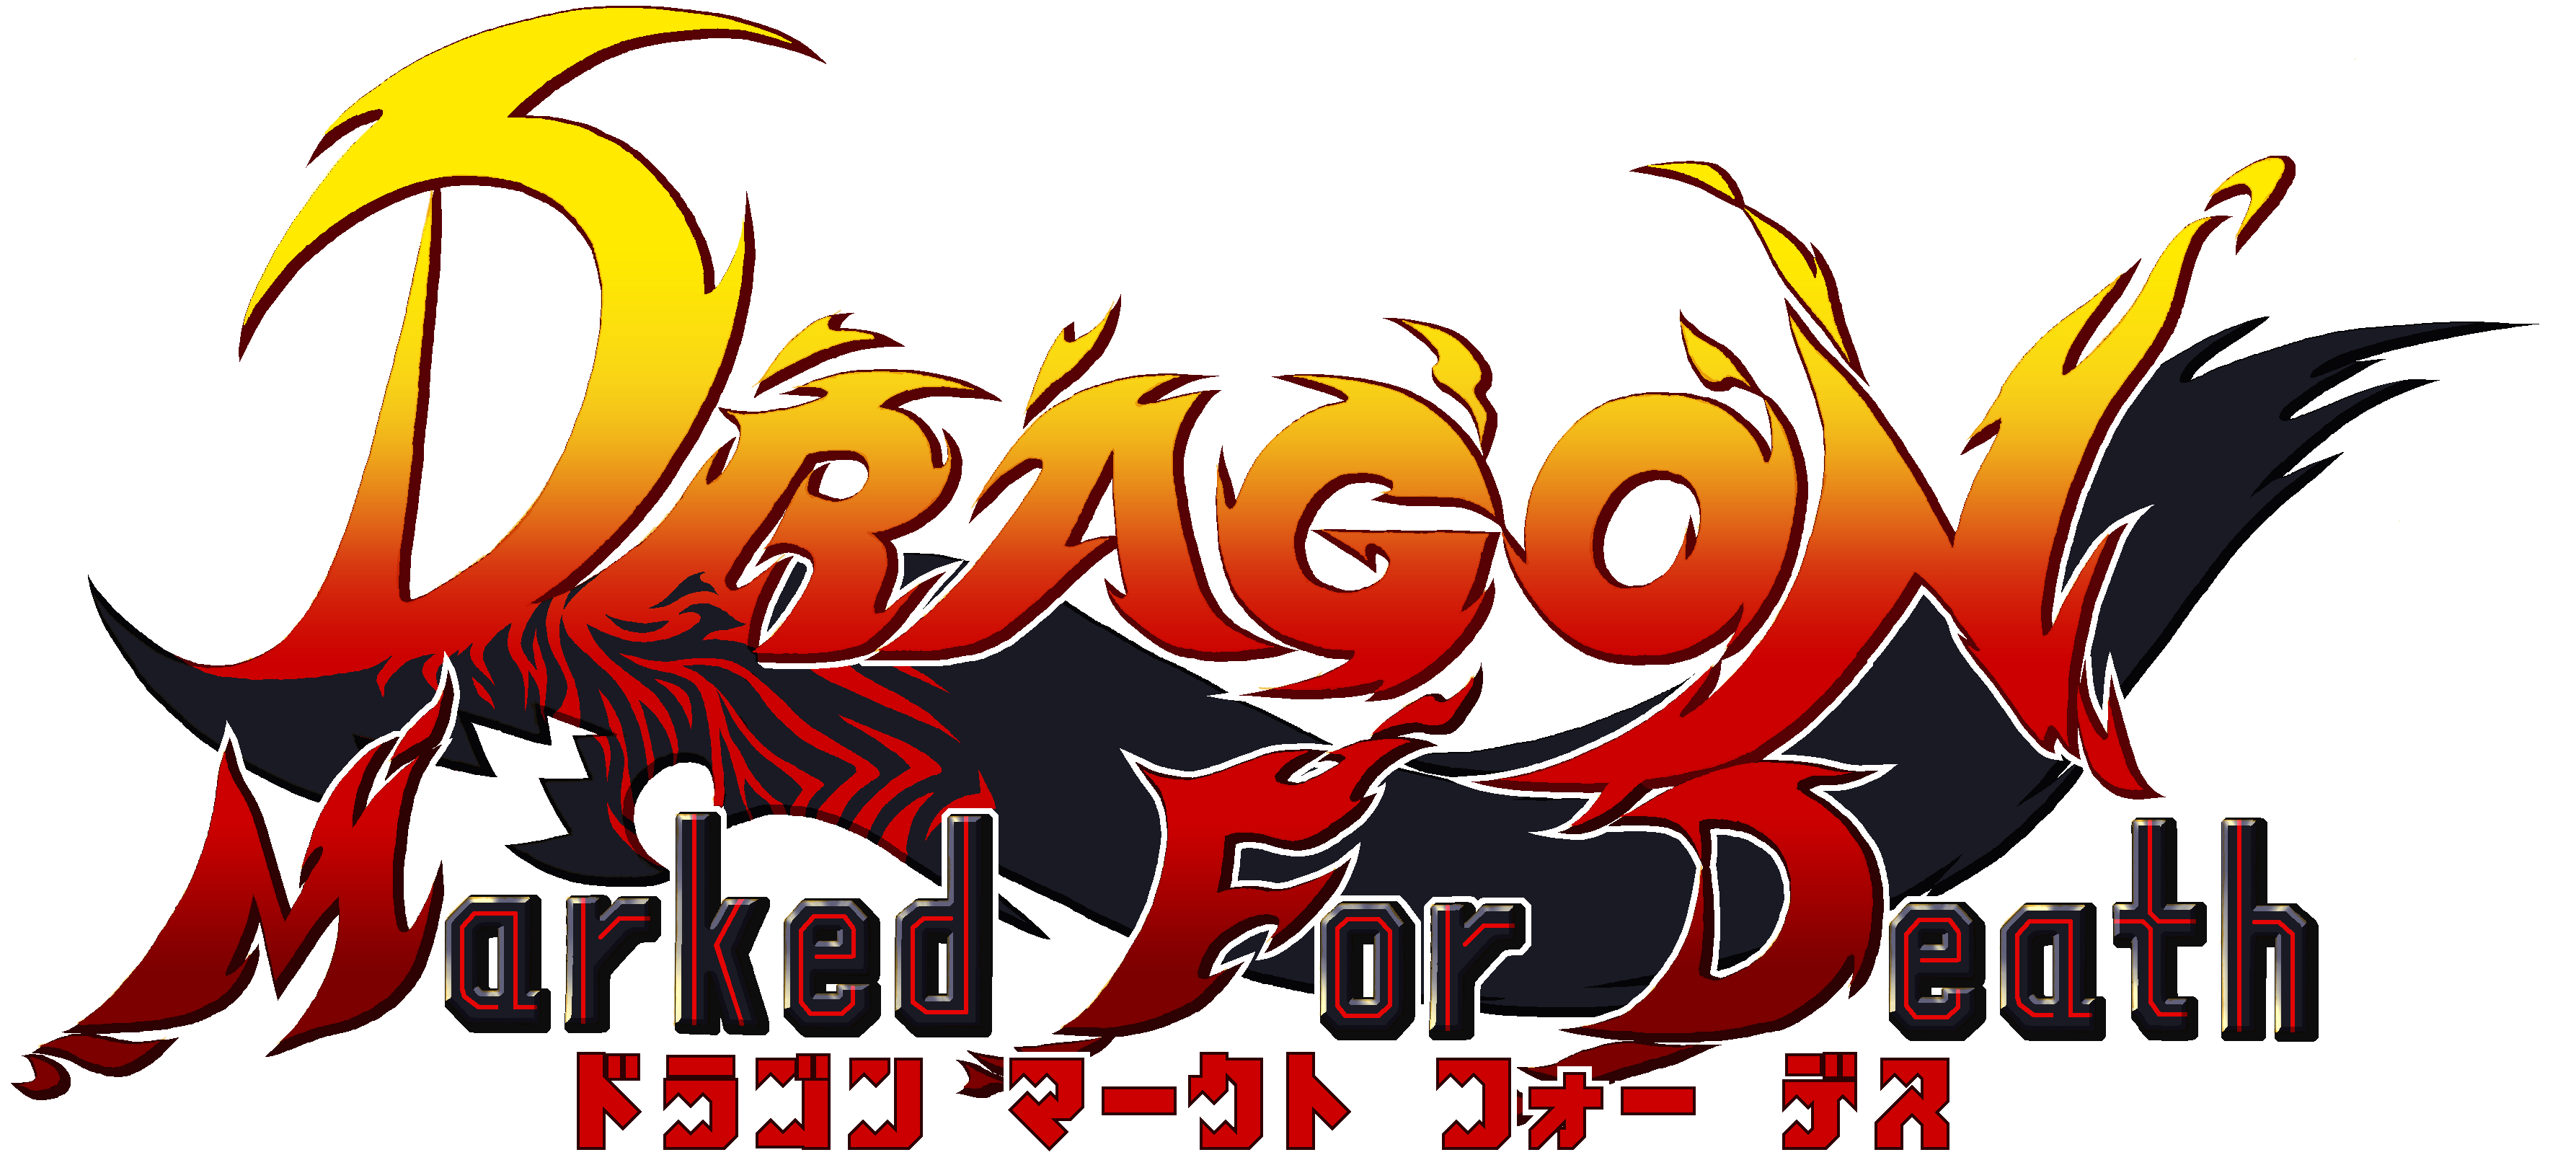 Death logo png. Image dragon marked for